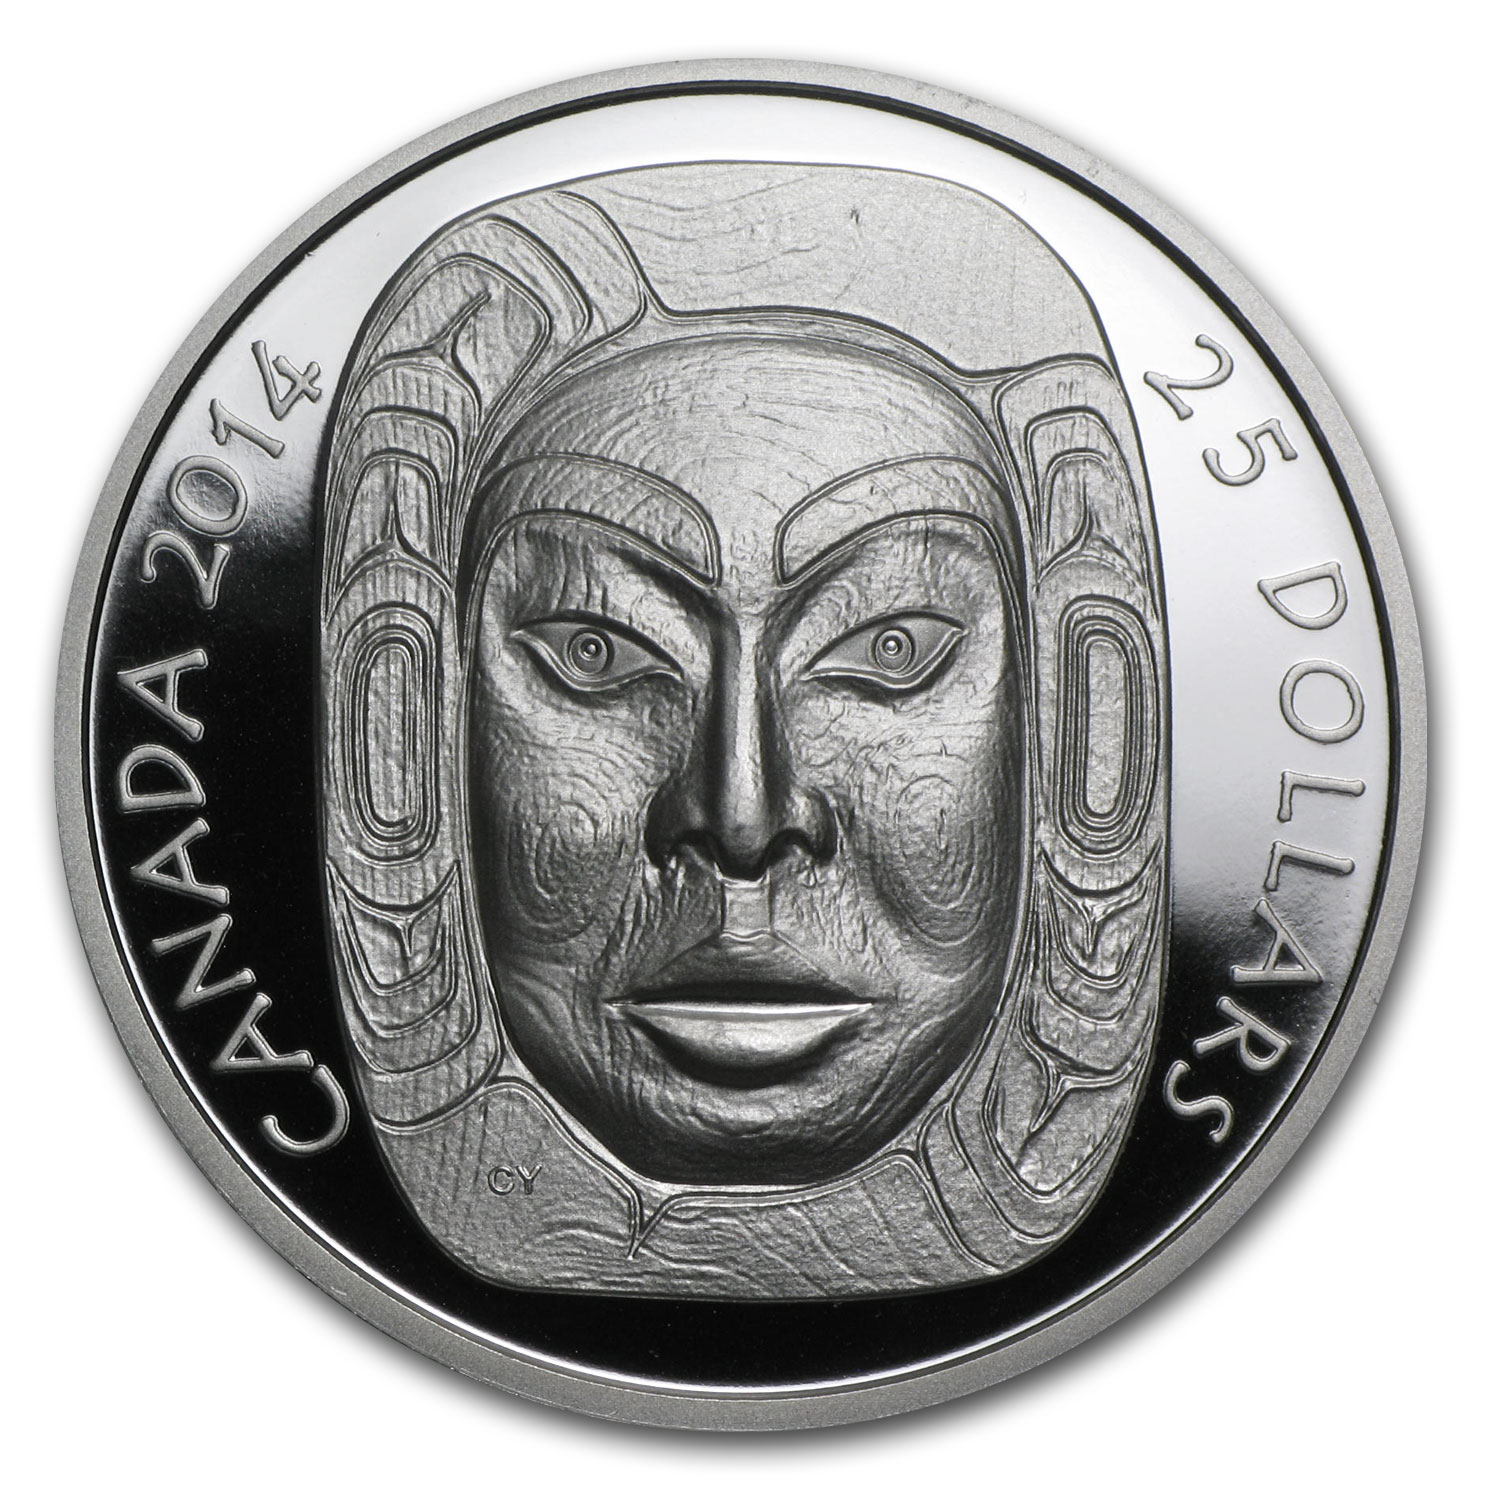 2014 1 oz Silver Canadian $25 Matriarch Moon Mask UHR